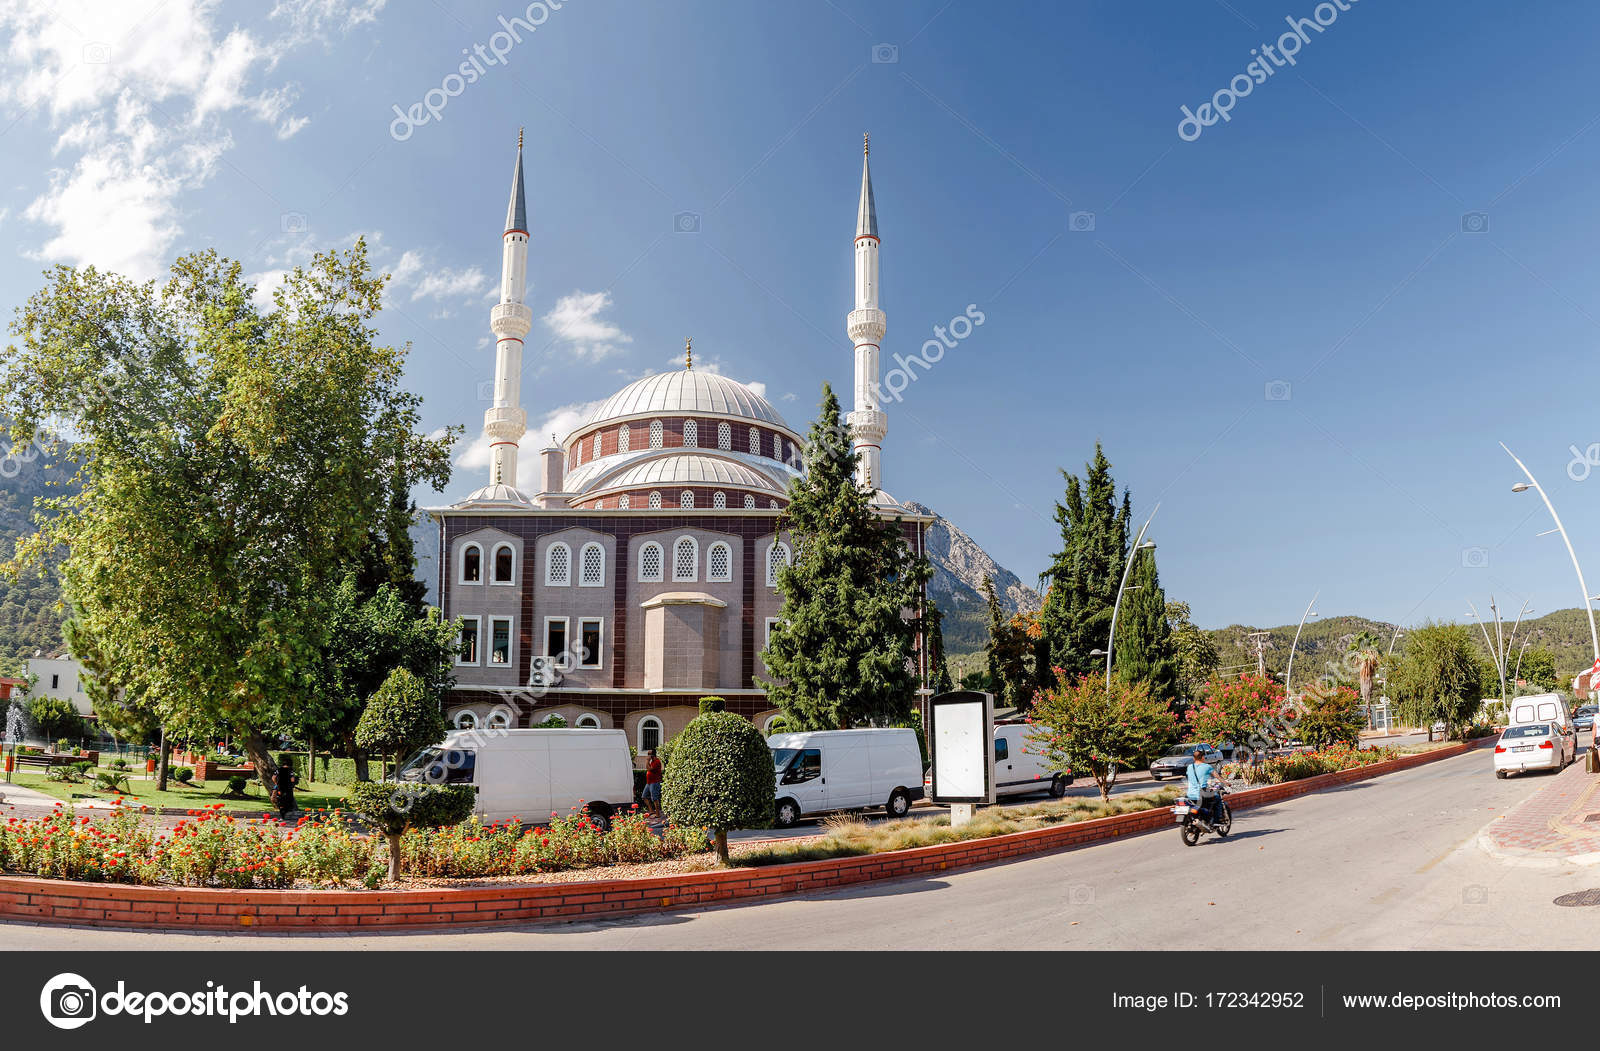 22 september 2017, goynuk, turkey: big mosque with minarets in